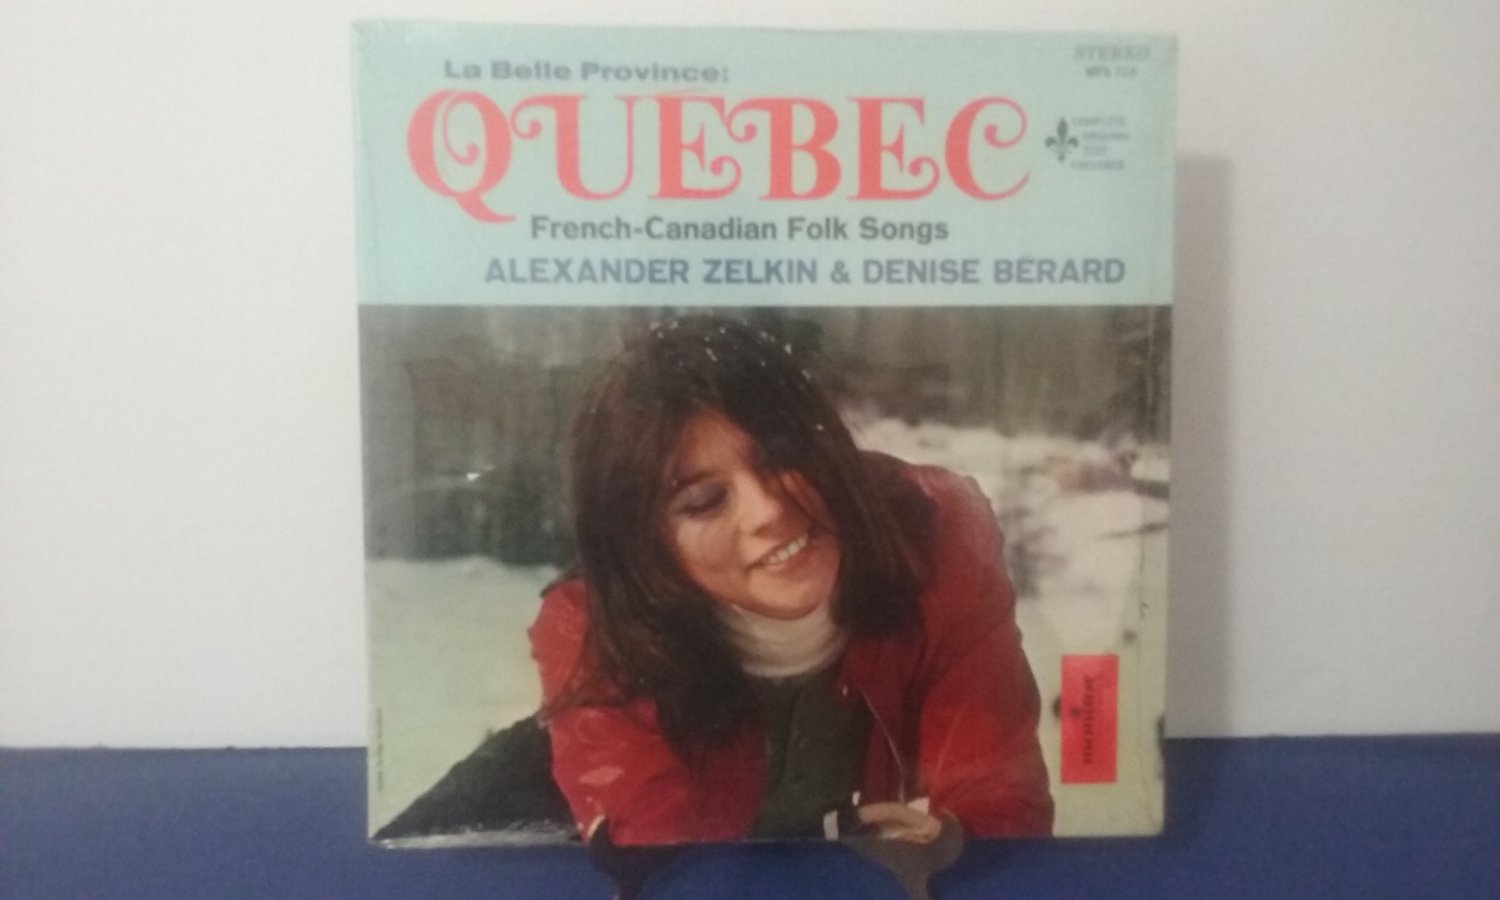 NEW! - Alexander Zelkin & Denise Berard - Quebec French Canadian Folk Songs - Circa 1970